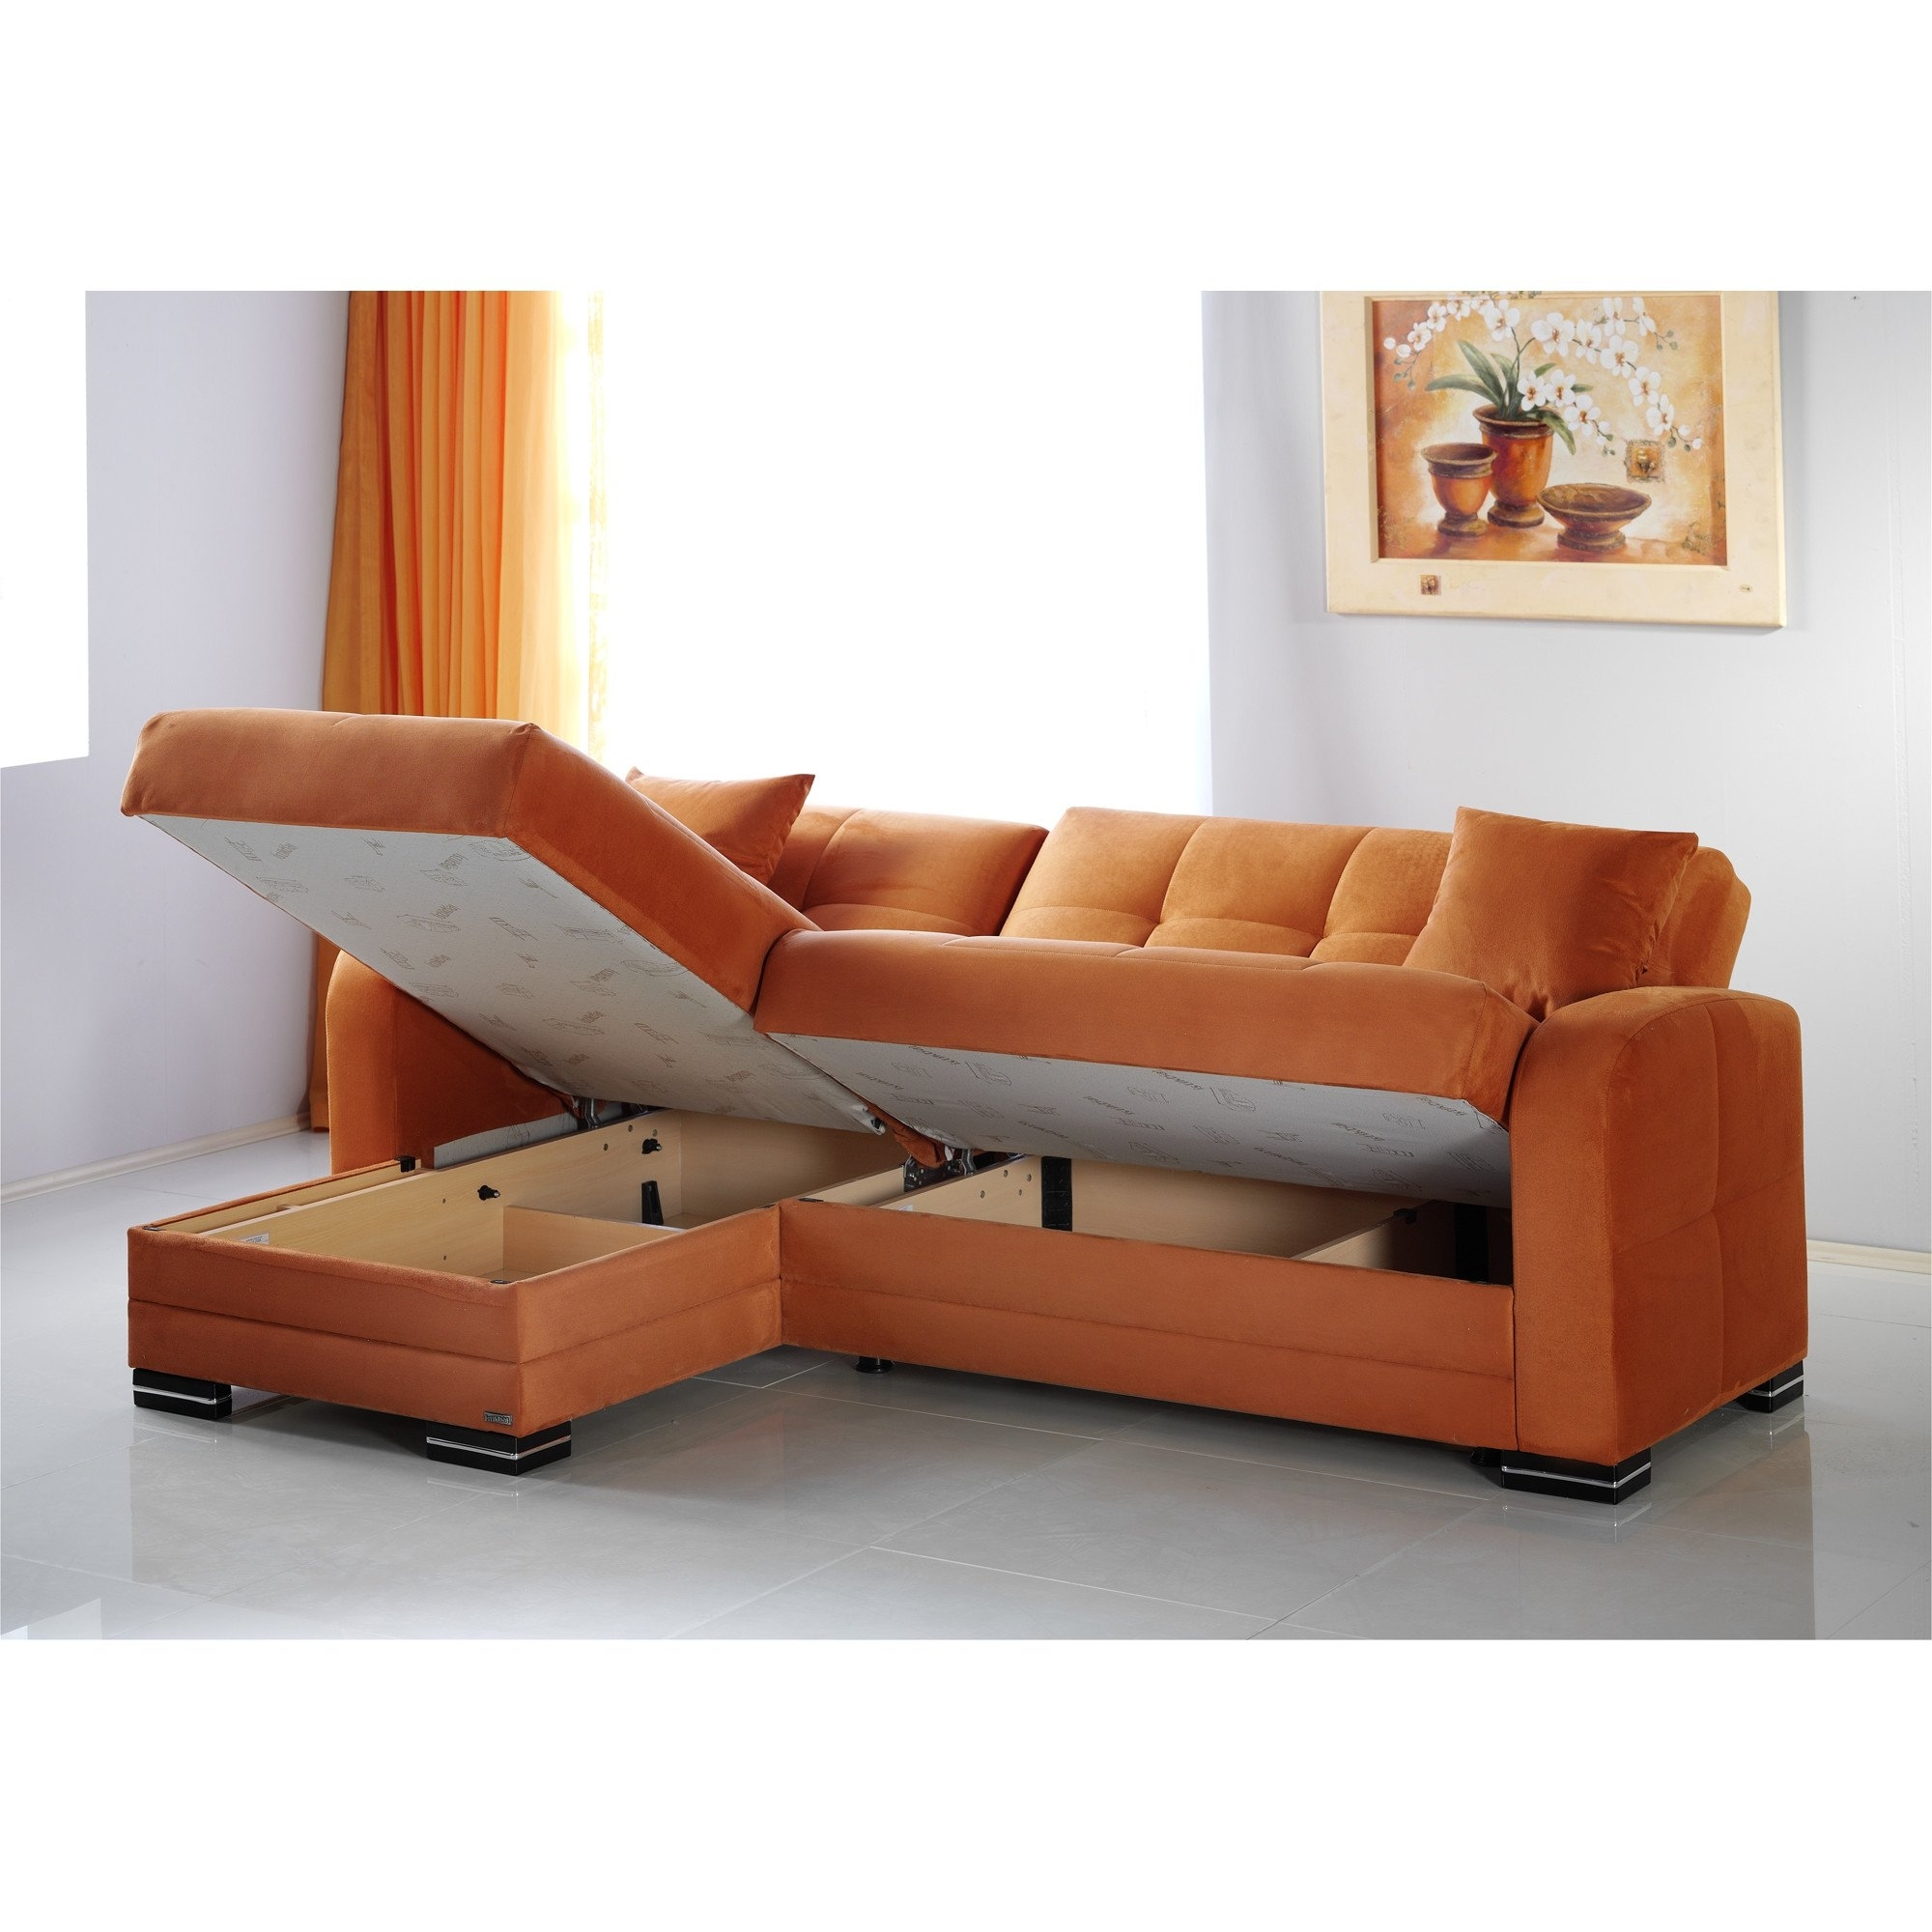 Preferred Kubo Rainbow Orange Sectional Sofasunset Regarding Reversible Chaise Sofas (View 7 of 15)